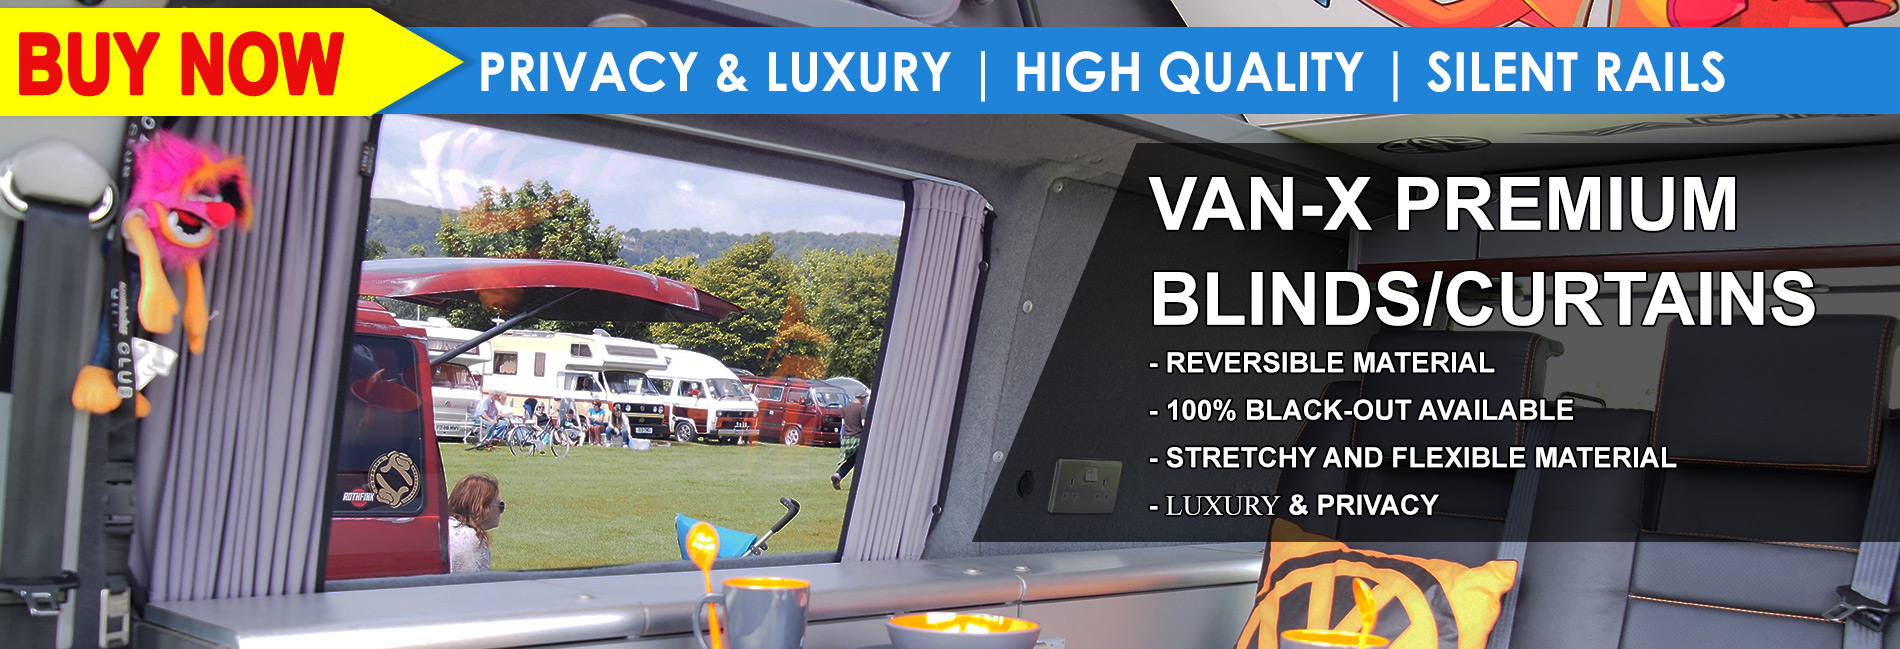 VAN-X CURTAINS | Blackout Premium | Single Layer Eco | NEXT DAY DELIVERY